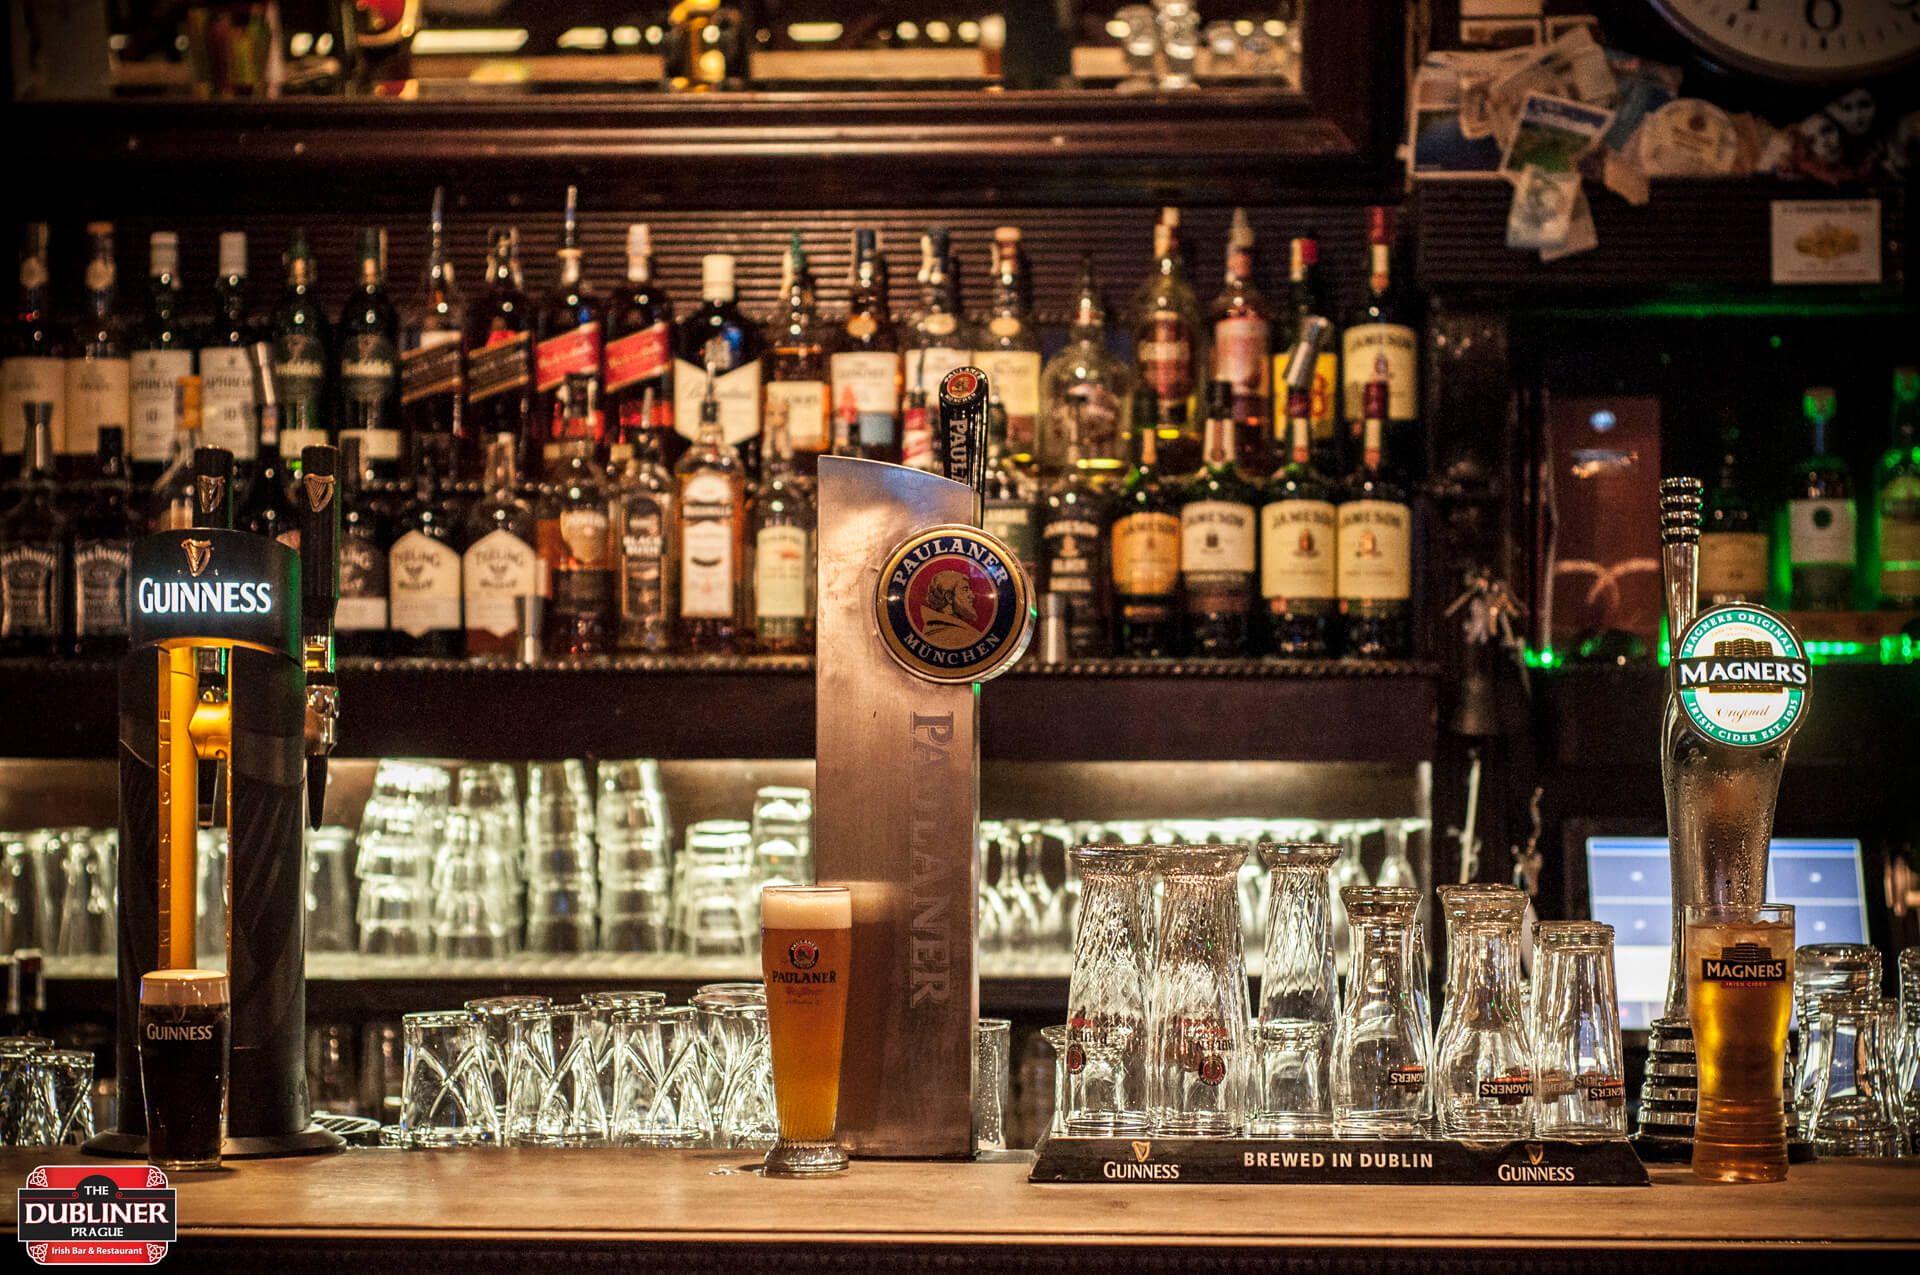 Gallery 031-1 | The Dubliner Prague Irish Bar